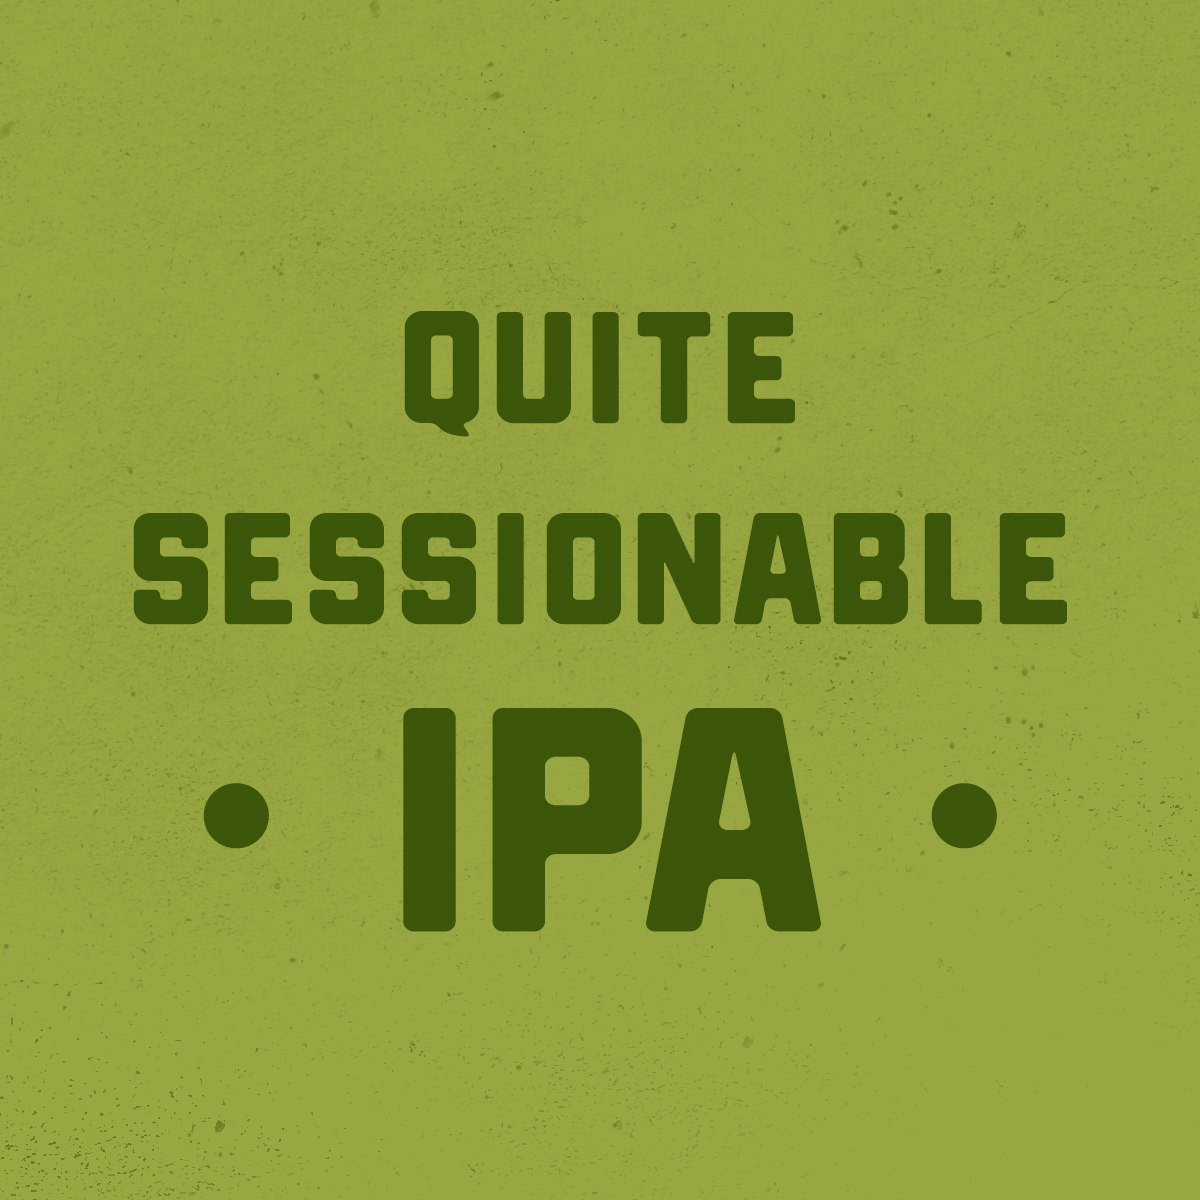 Quite Sessionable IPA